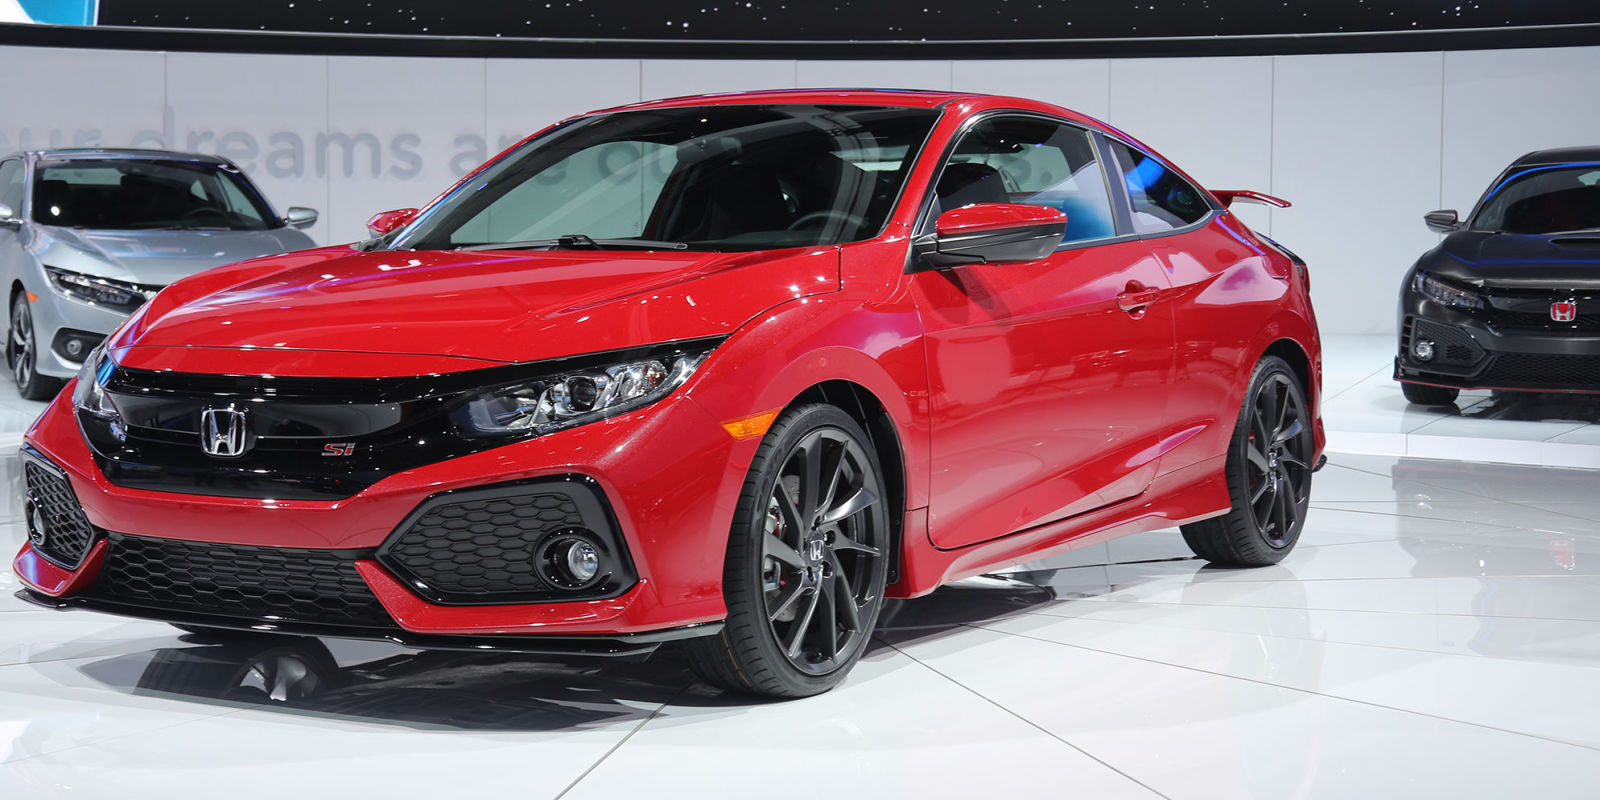 2017 honda civic si vs type r high performance turbocharged hondas. Black Bedroom Furniture Sets. Home Design Ideas